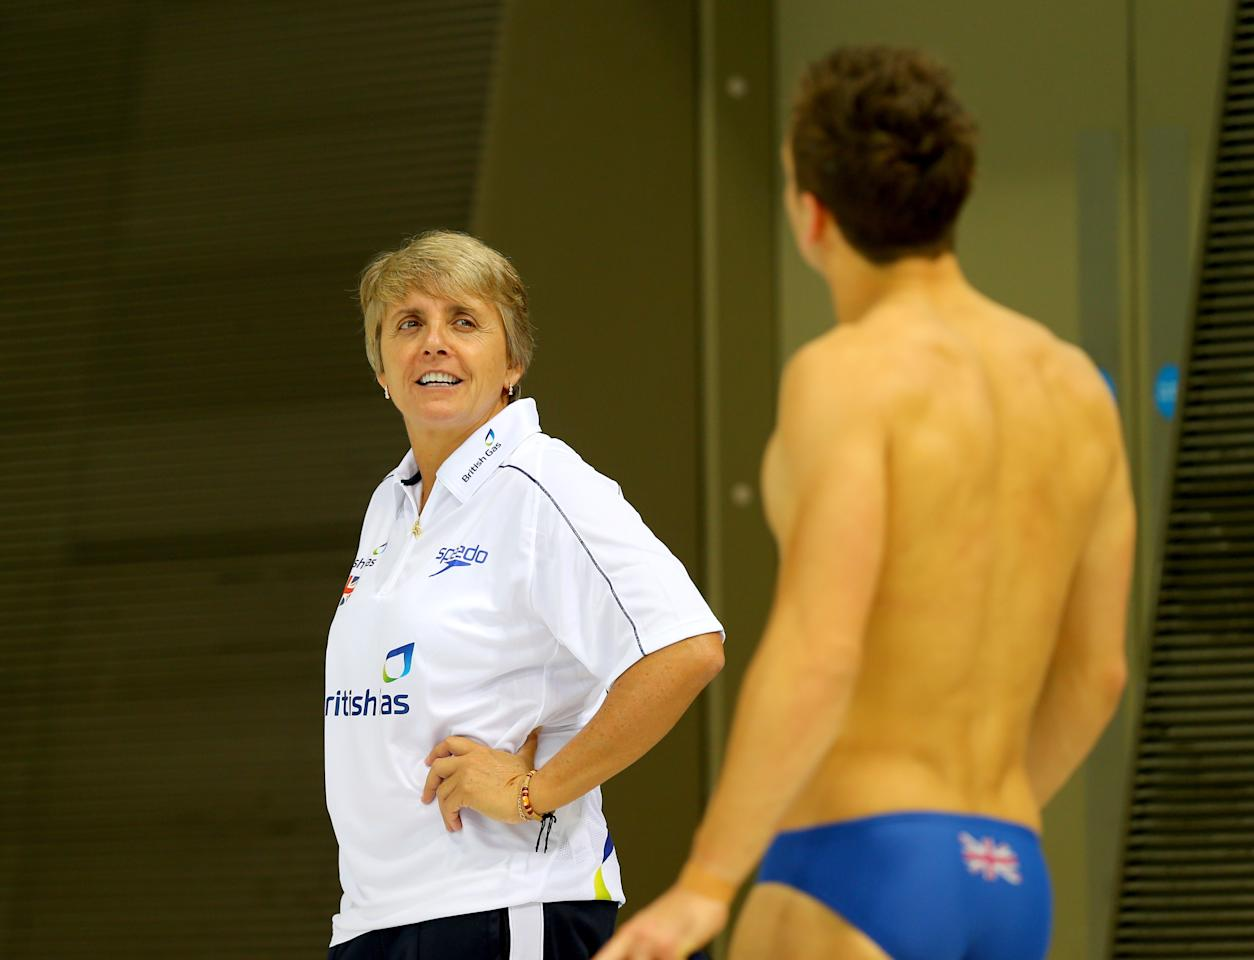 LONDON, ENGLAND - JANUARY 22: British diving coach Jane Figueiredo gives instructions to Tom Daley during a training session at the London Aquatics Centre on January 22, 2014 in London, England. (Photo by Clive Rose/Getty Images)